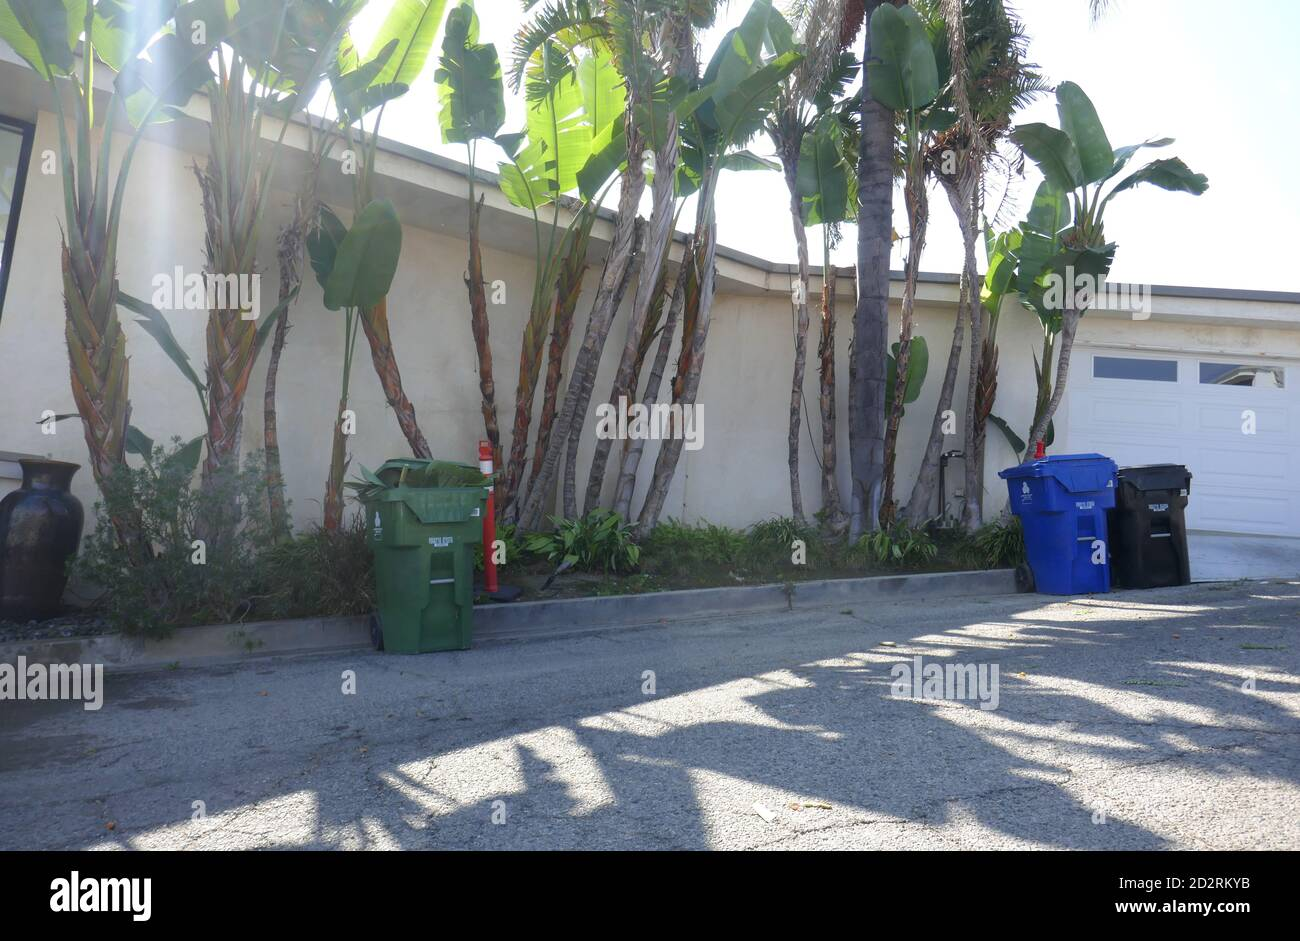 Los Angeles, California, USA 6th October 2020 A general view of atmosphere of Musician George Harrison's former home and musicians Paul Simon and Art Garfunkel's former home at 1567 Blue Jay Way on October 6, 2020 in Los Angeles, California, USA. Photo by Barry King/Alamy Stock Photo Stock Photo